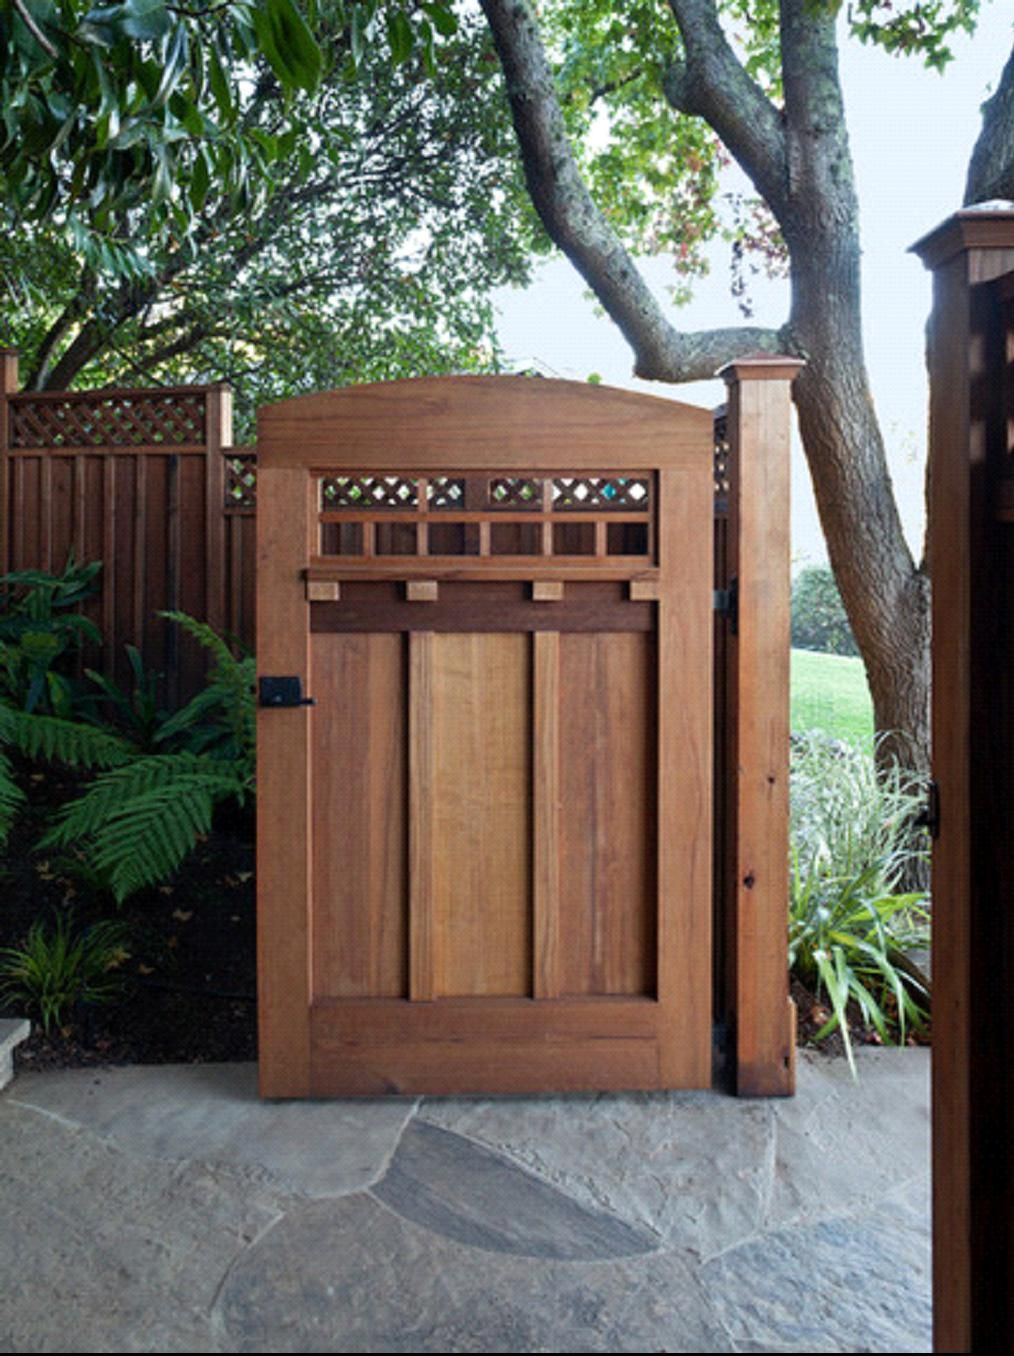 If you are adding any details to the exterior or landscape of your Craftsman-style home, it pays to seek out the highest quality craftsmanship you can - after all, it's not called Craftsman style for nothing! Beautiful details on a fence or garden gate, like the one shown here, will echo the architecture of your home and enhance the view from the street. #craftsmanstylehomes